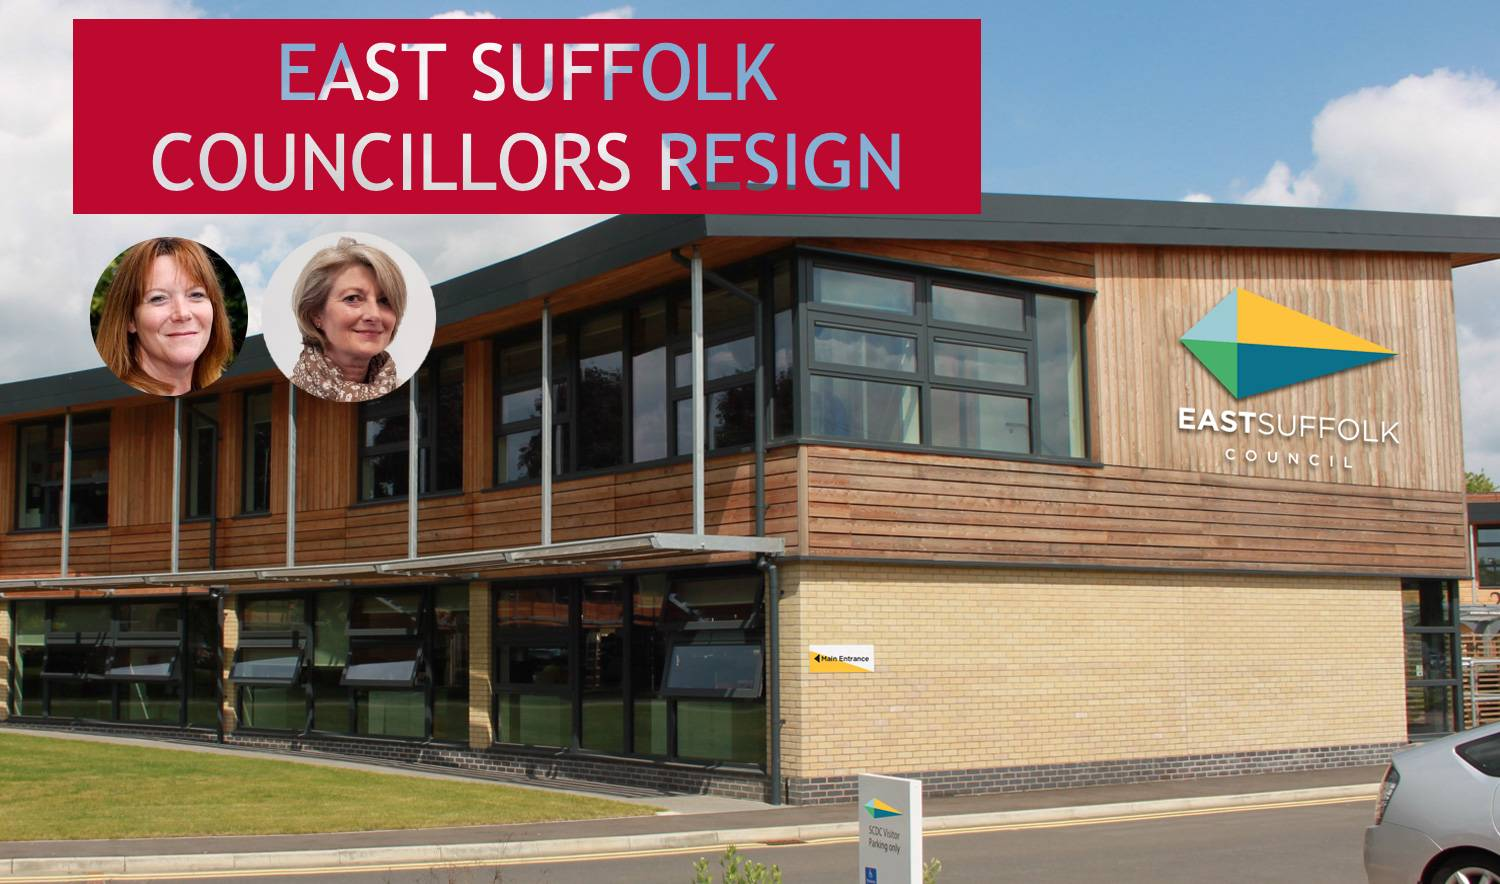 East Suffolk - Councillor resigns due to district authority's damaging energy aspirations.